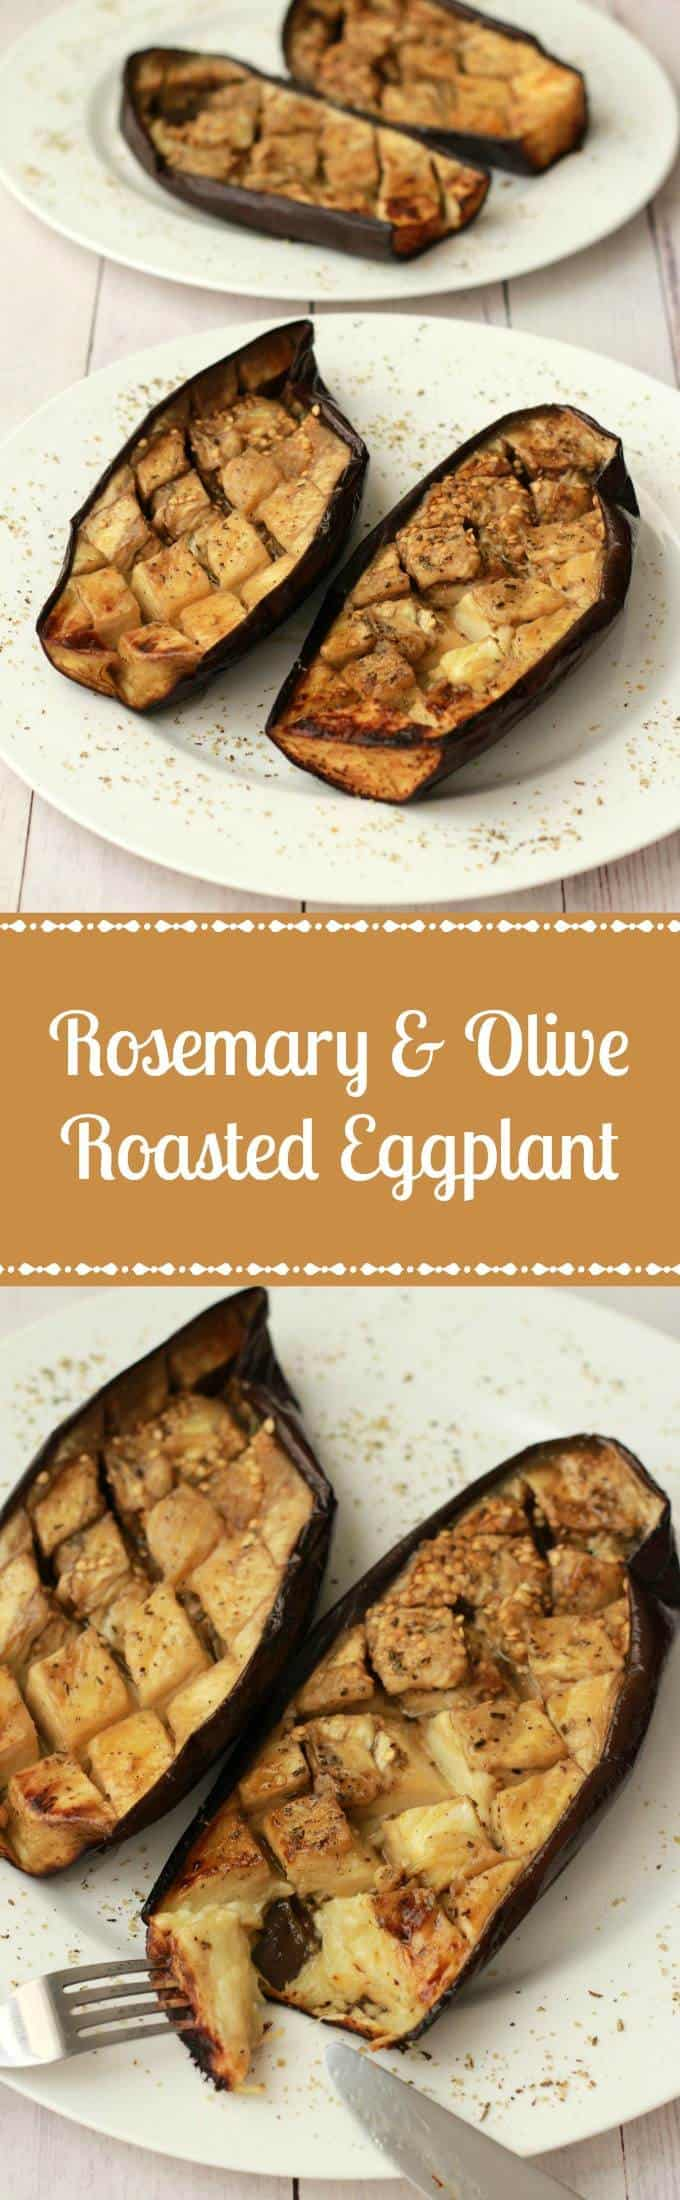 Rosemary and Olive Oil Roasted Eggplant #vegan #lovingitvegan #appetizer #sides #eggplant #glutenfree